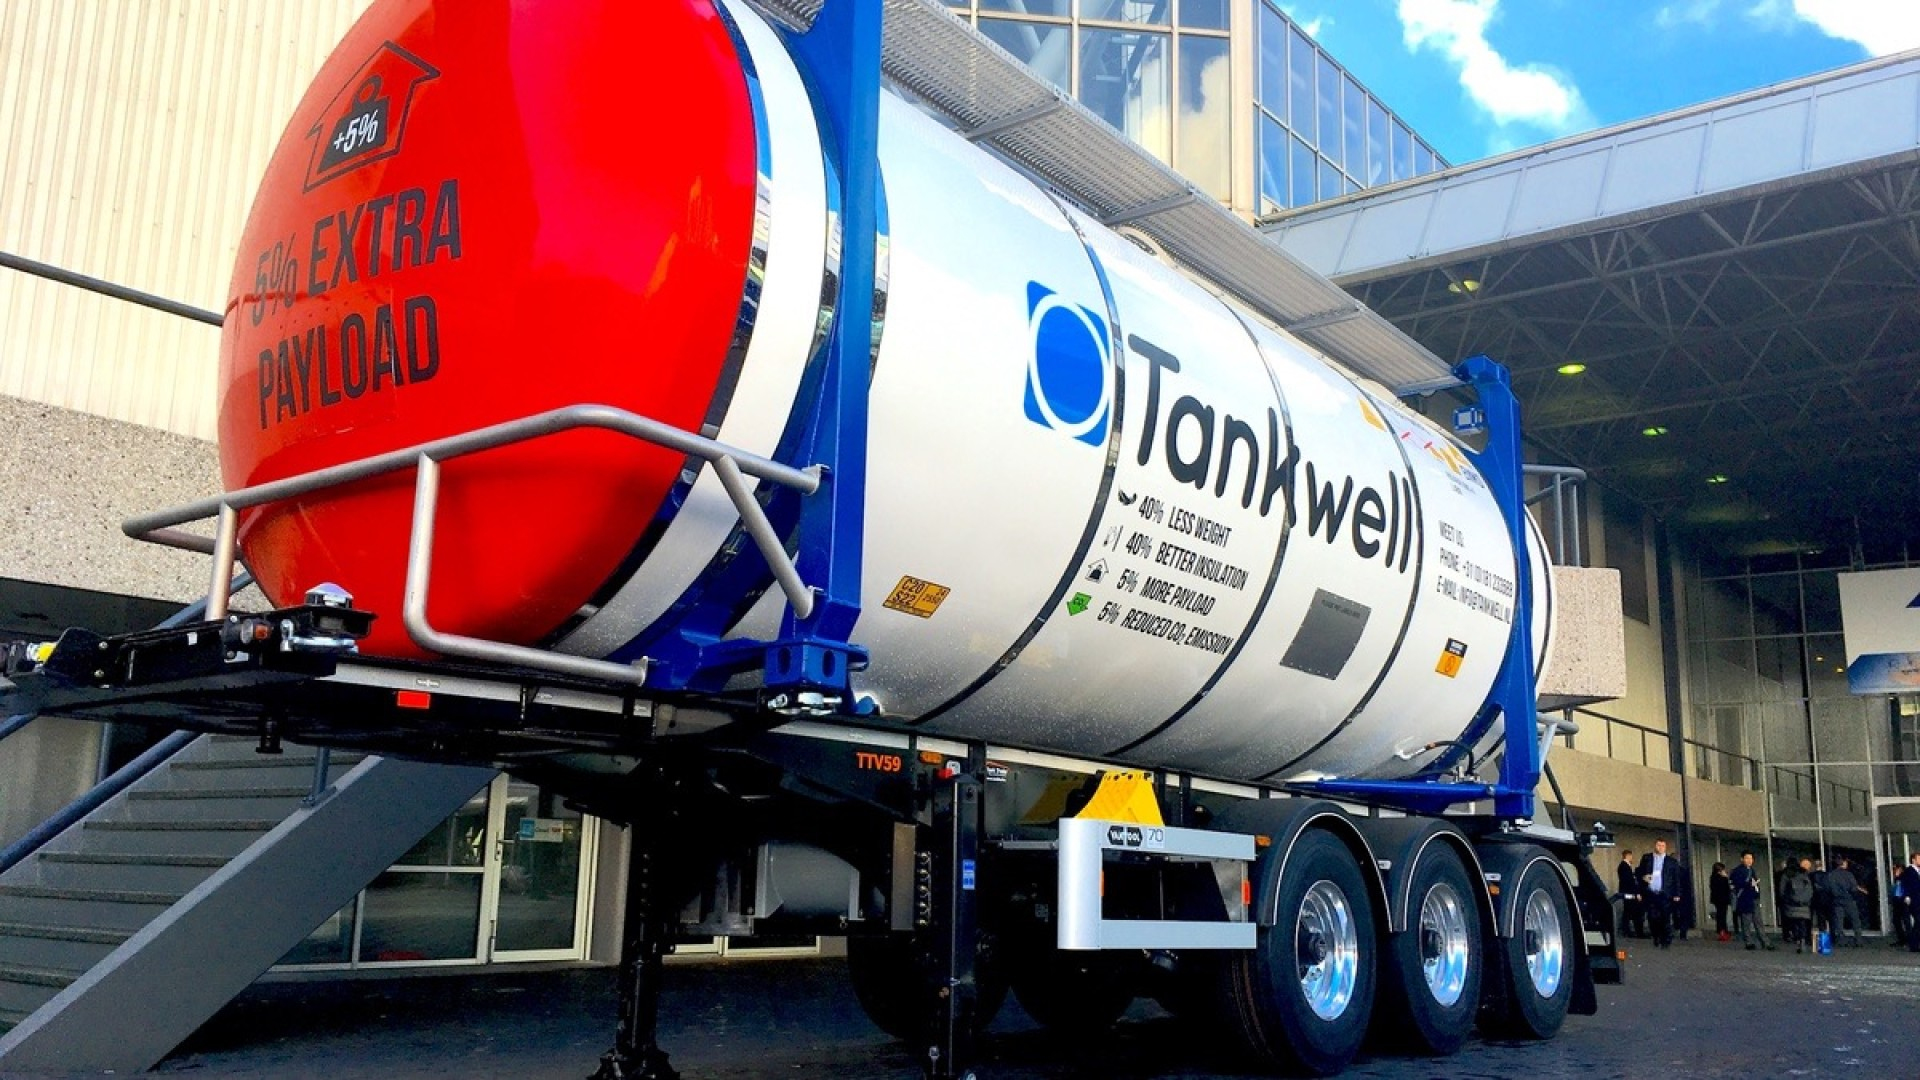 Tankwell at Intermodal Europe in Amsterdam